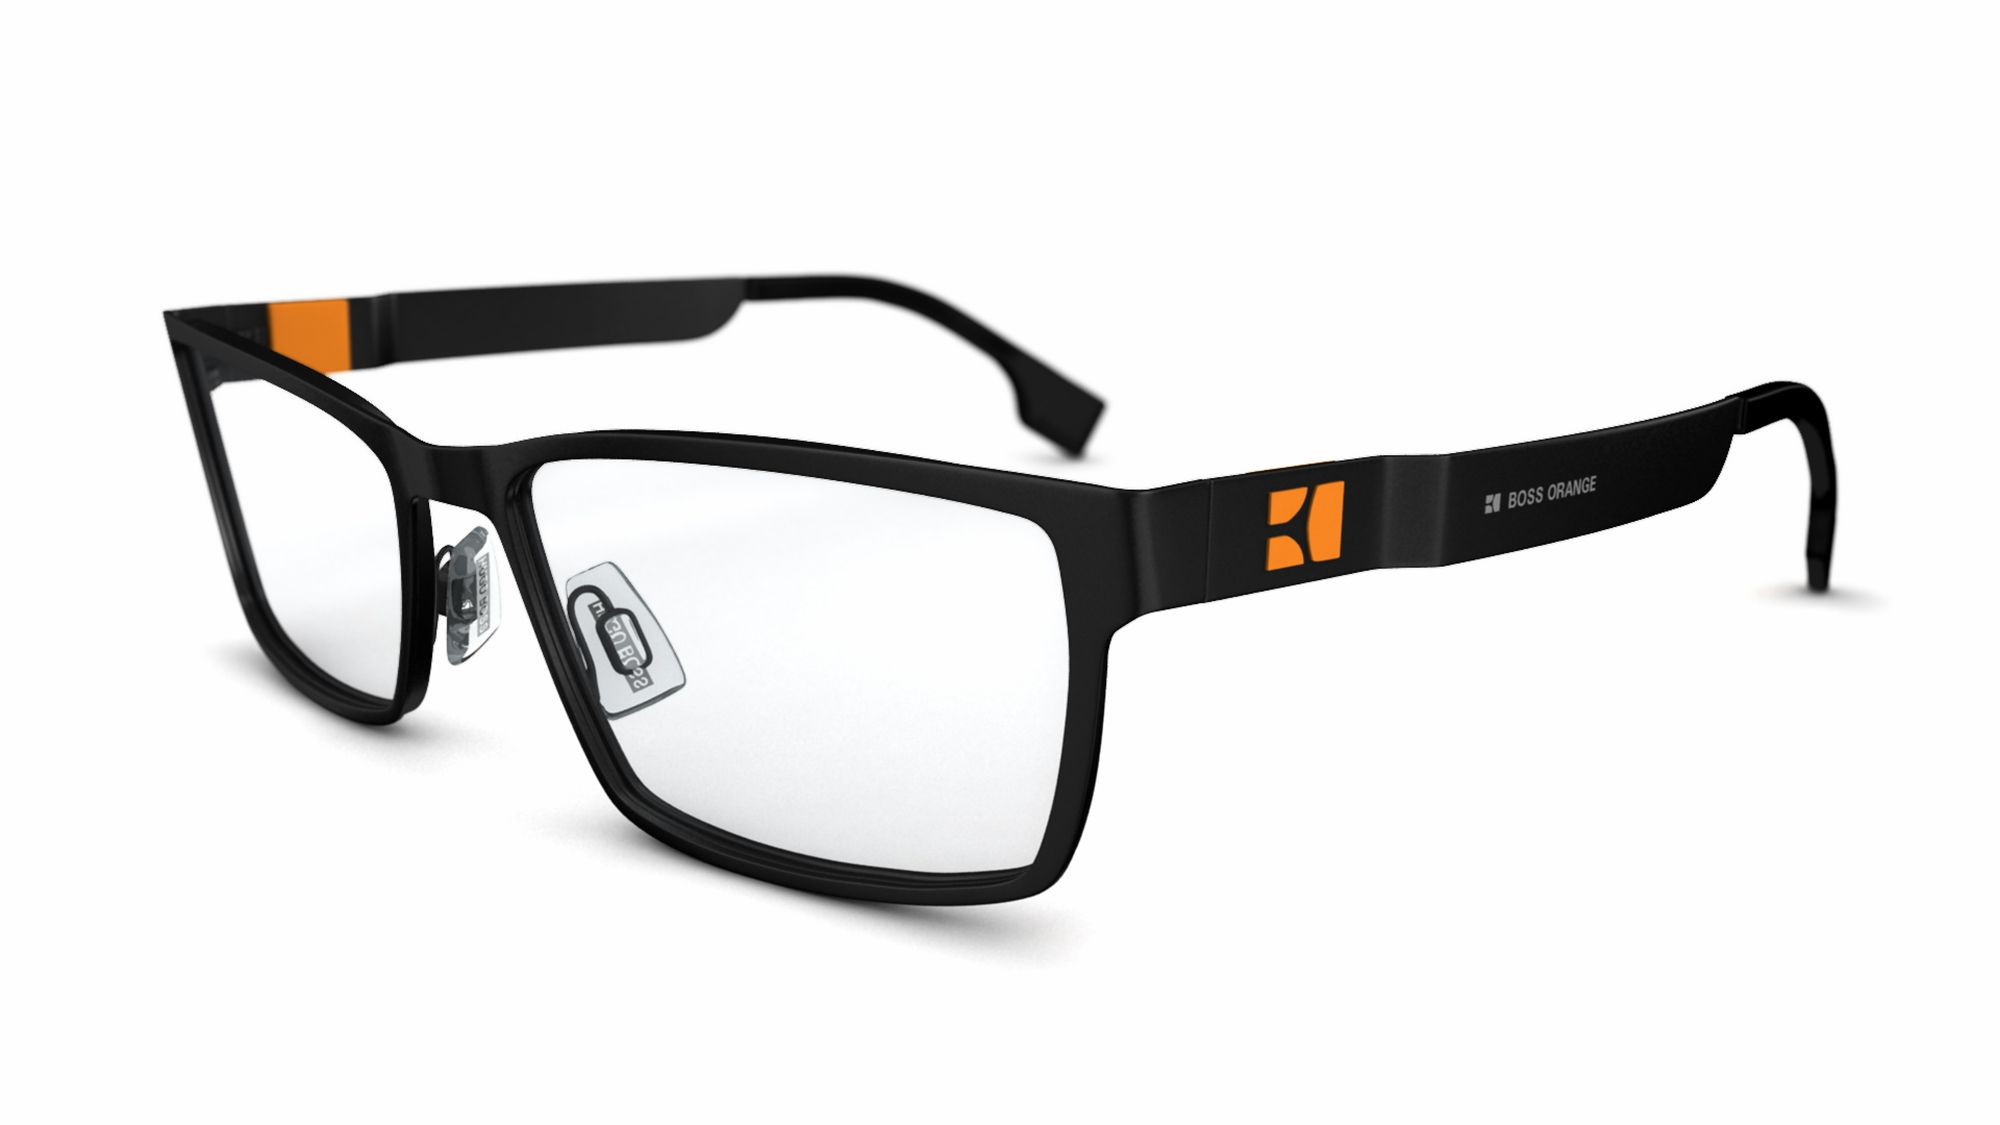 90f88f445f BOSS Orange glasses - BO 0001my new frames | Mens fashion | Boss ...